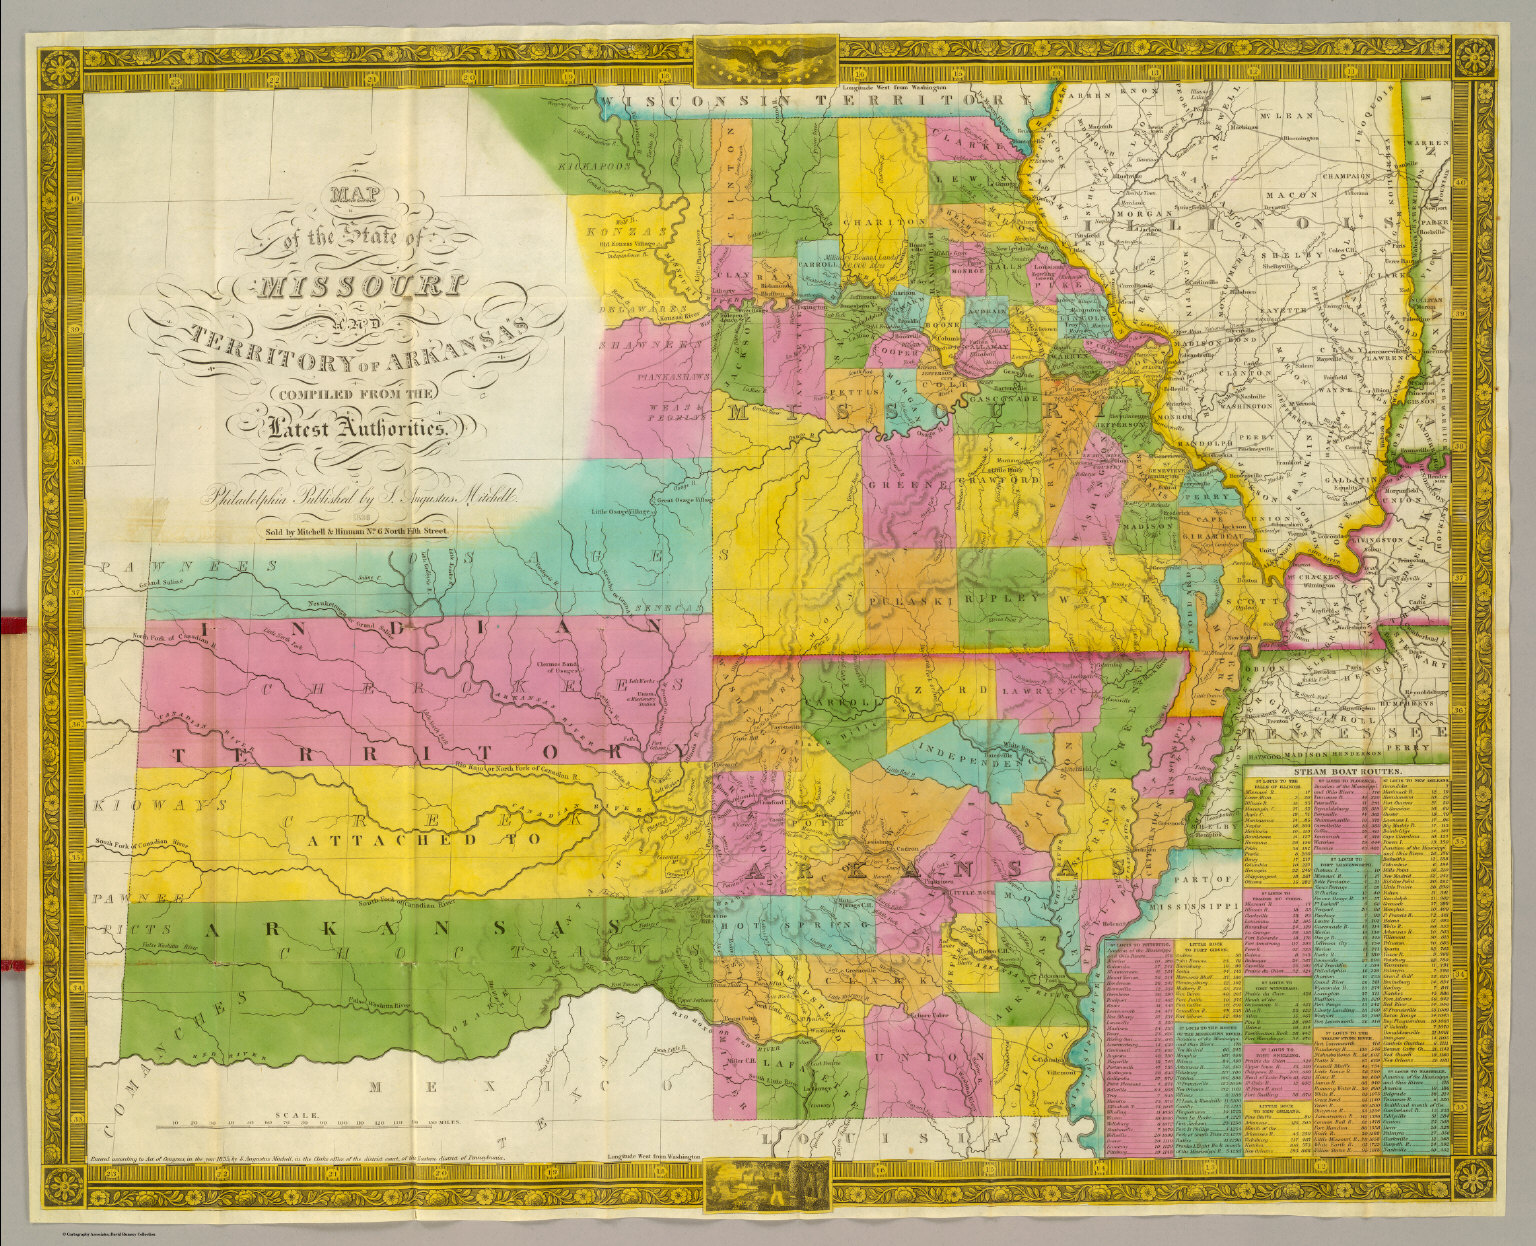 Map Of The State Of Missouri And Territory Of Arkansas David - Map of the state of arkansas